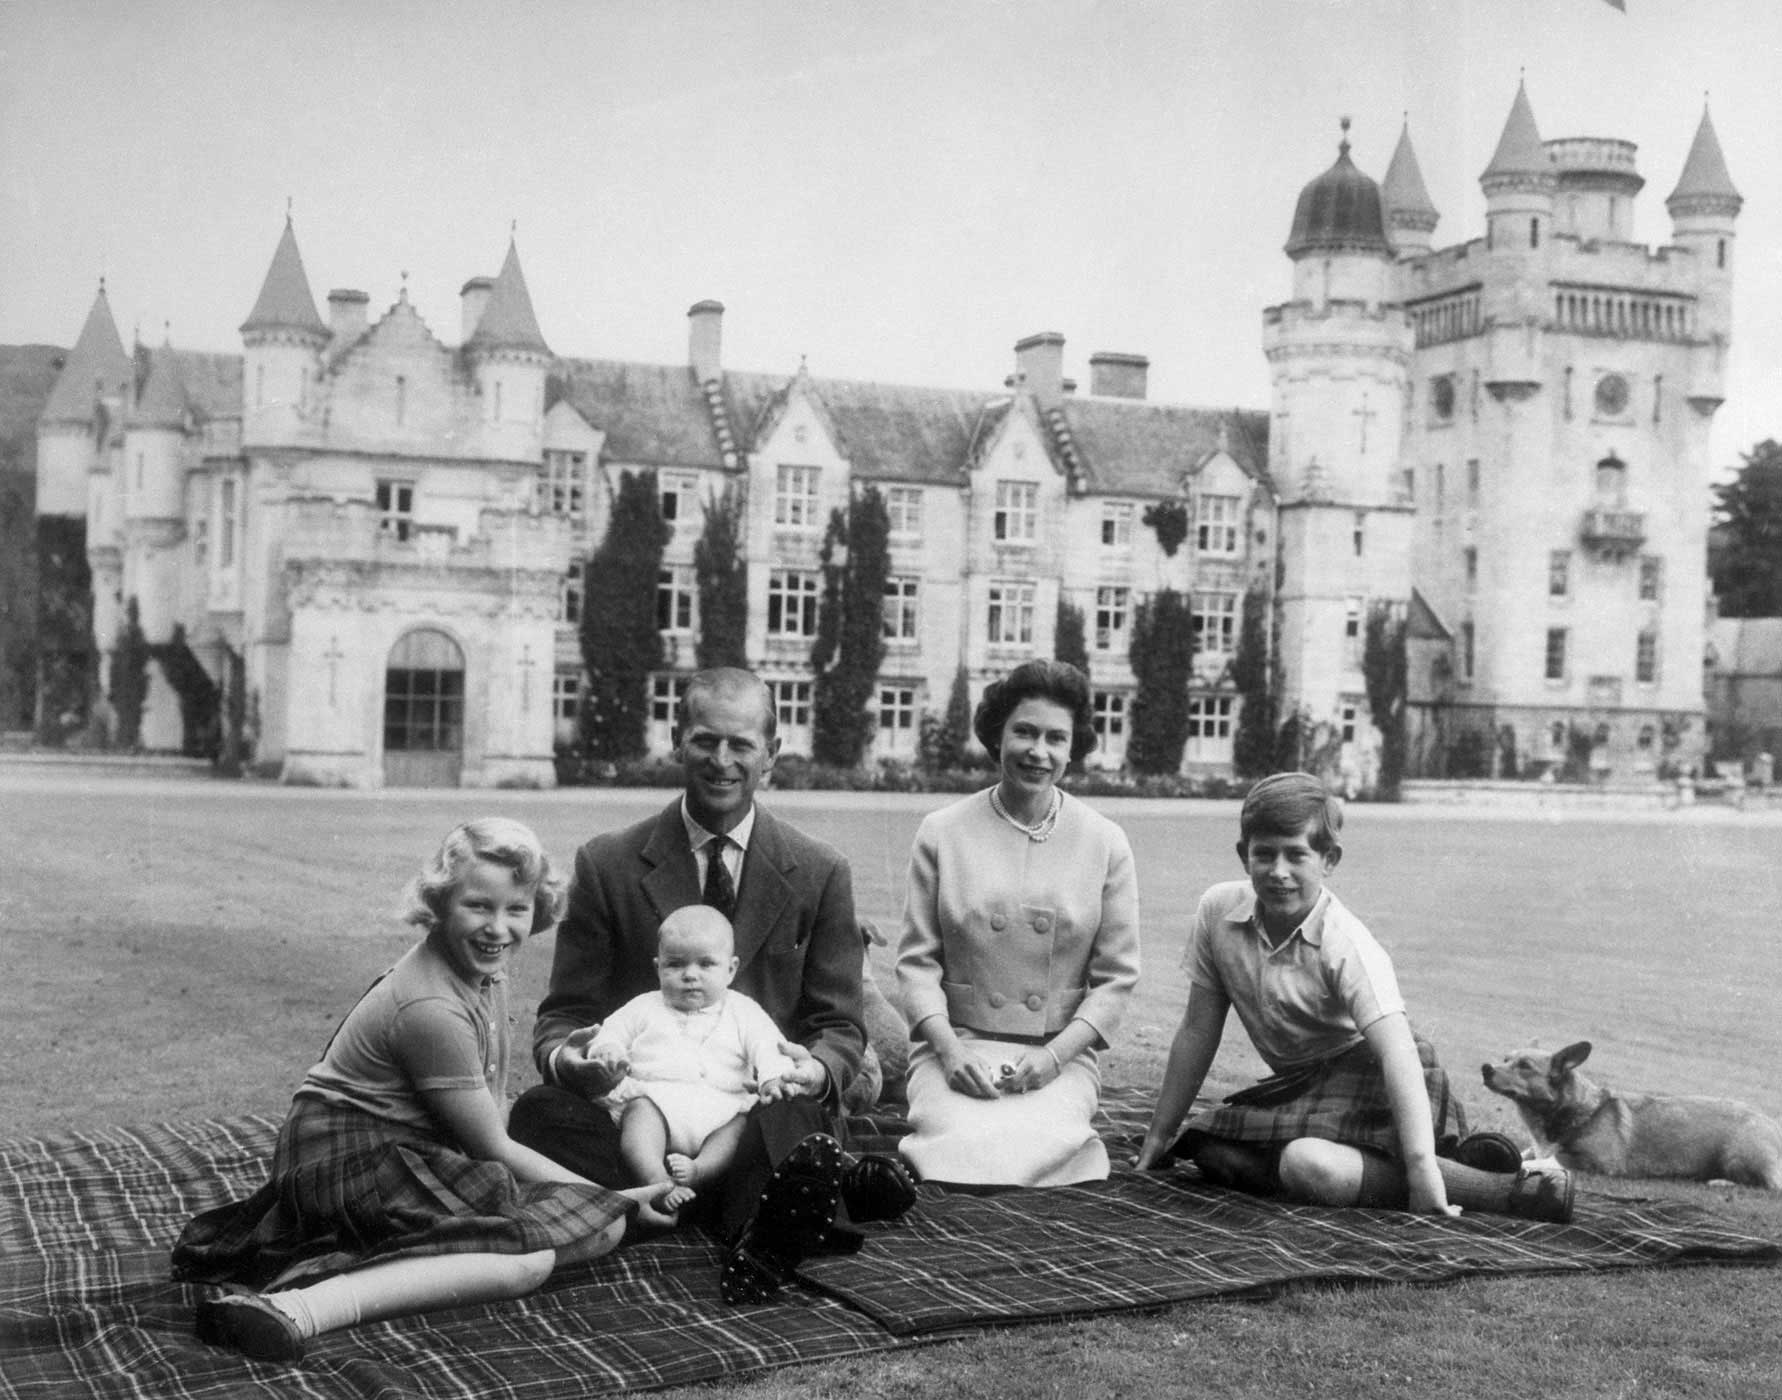 A family portrait during a picnic at Balmoral Castle in Aberdeenshire, Scotland, on Sept. 8, 1960. After the births of Prince Charles and Princess Anne, Elizabeth and Philip's family continued to expand with the arrival of Prince Andrew on Feb. 19, 1960.